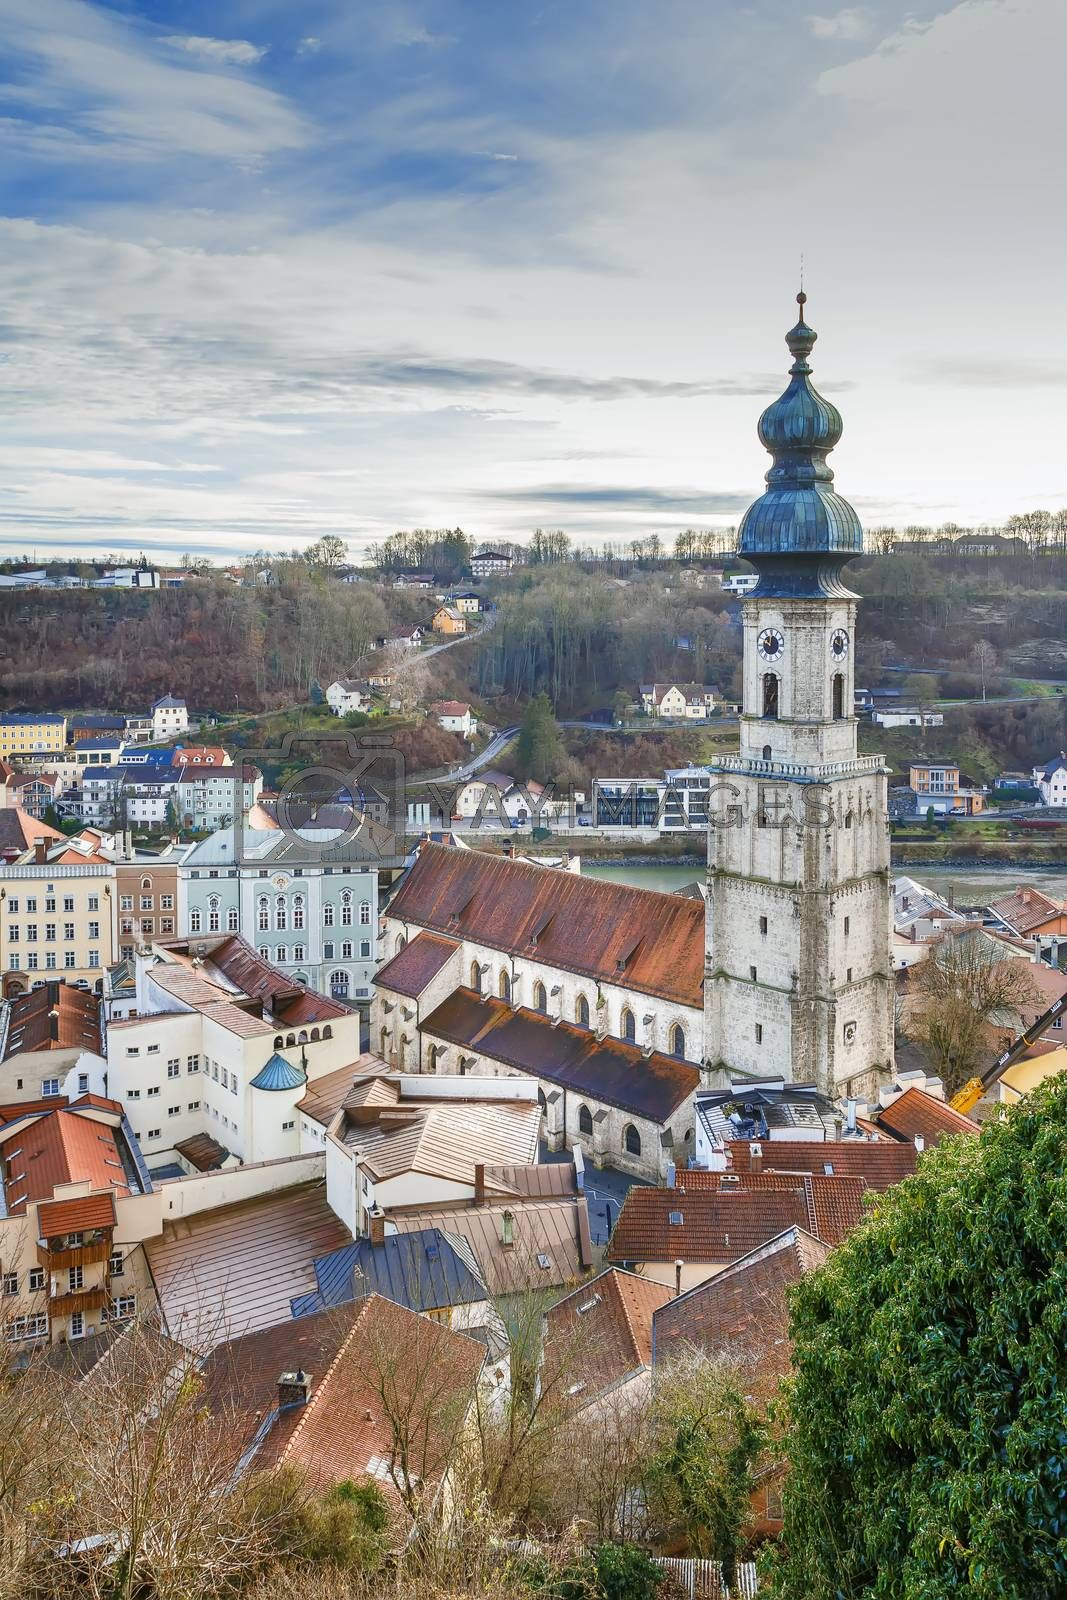 View of Burghausen city center with St. Jakob Parish Church from  Burghausen castle, Germany